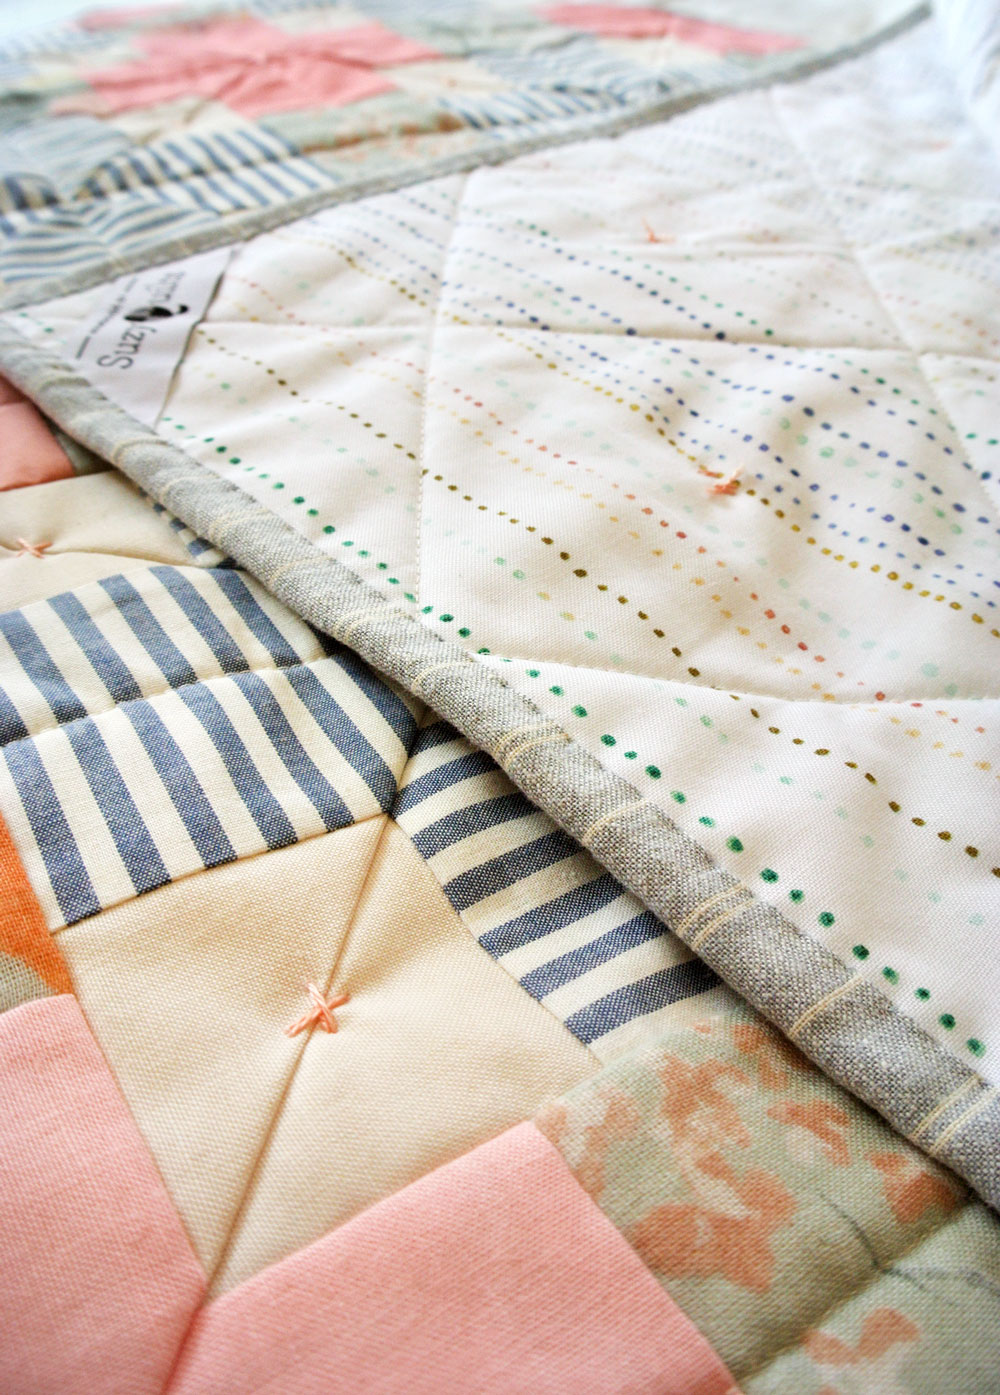 How to tie a quilt with a modern twist! | Suzy Quilts https://suzyquilts.com/how-to-tie-a-quilt-with-a-modern-twist